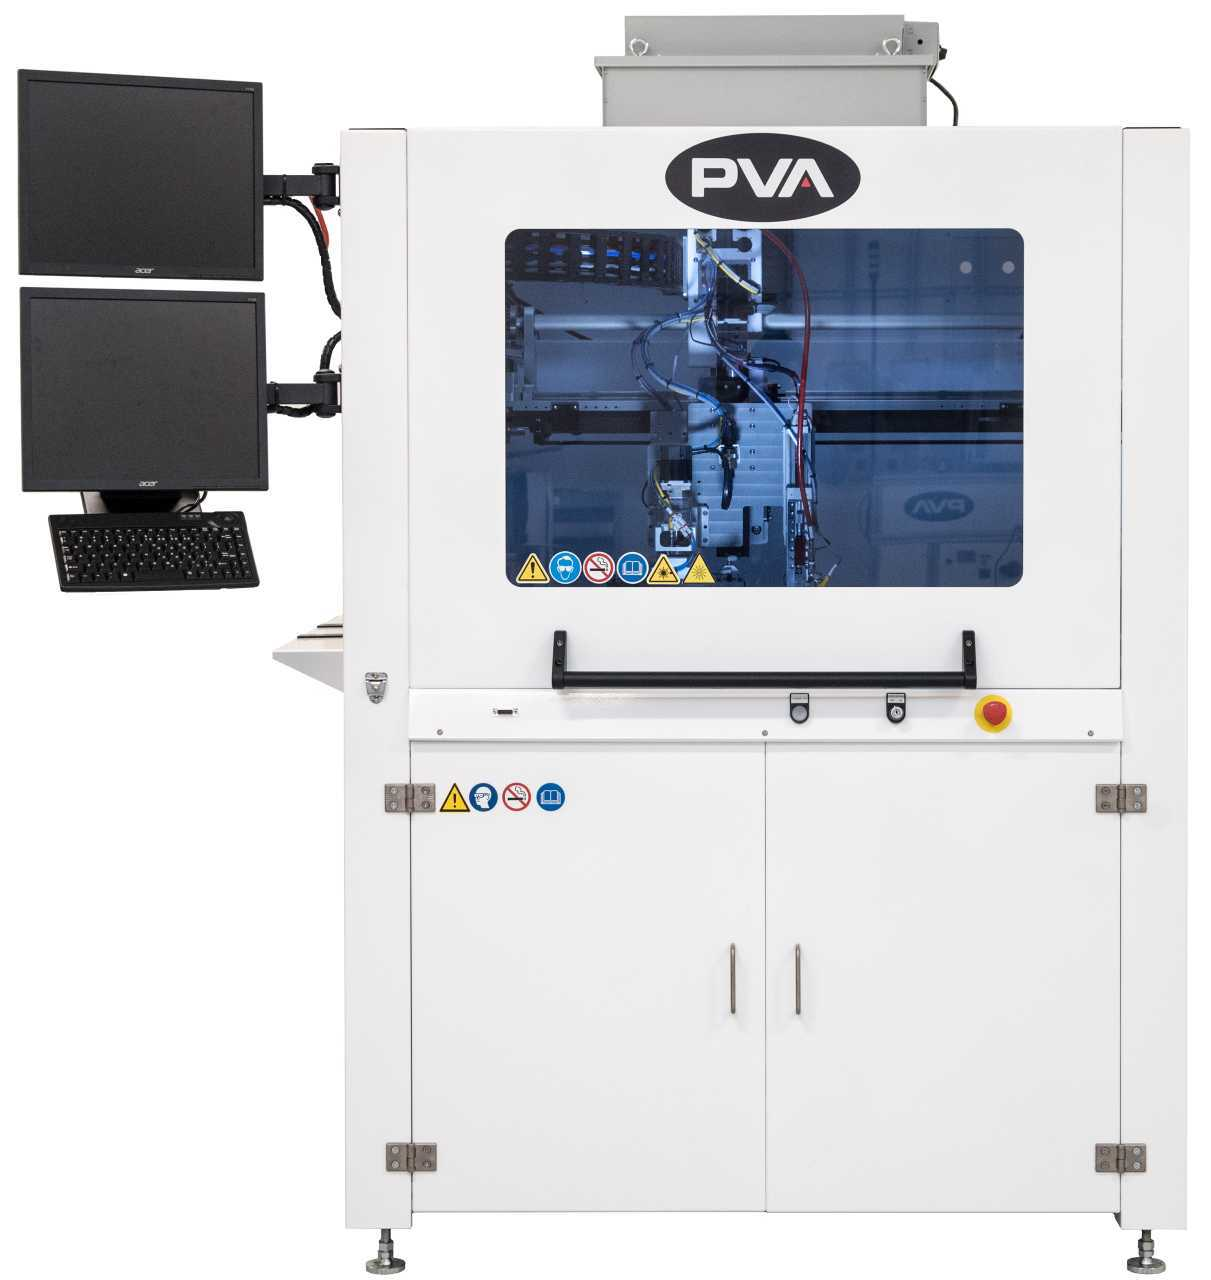 pva-optical-bonding-machine